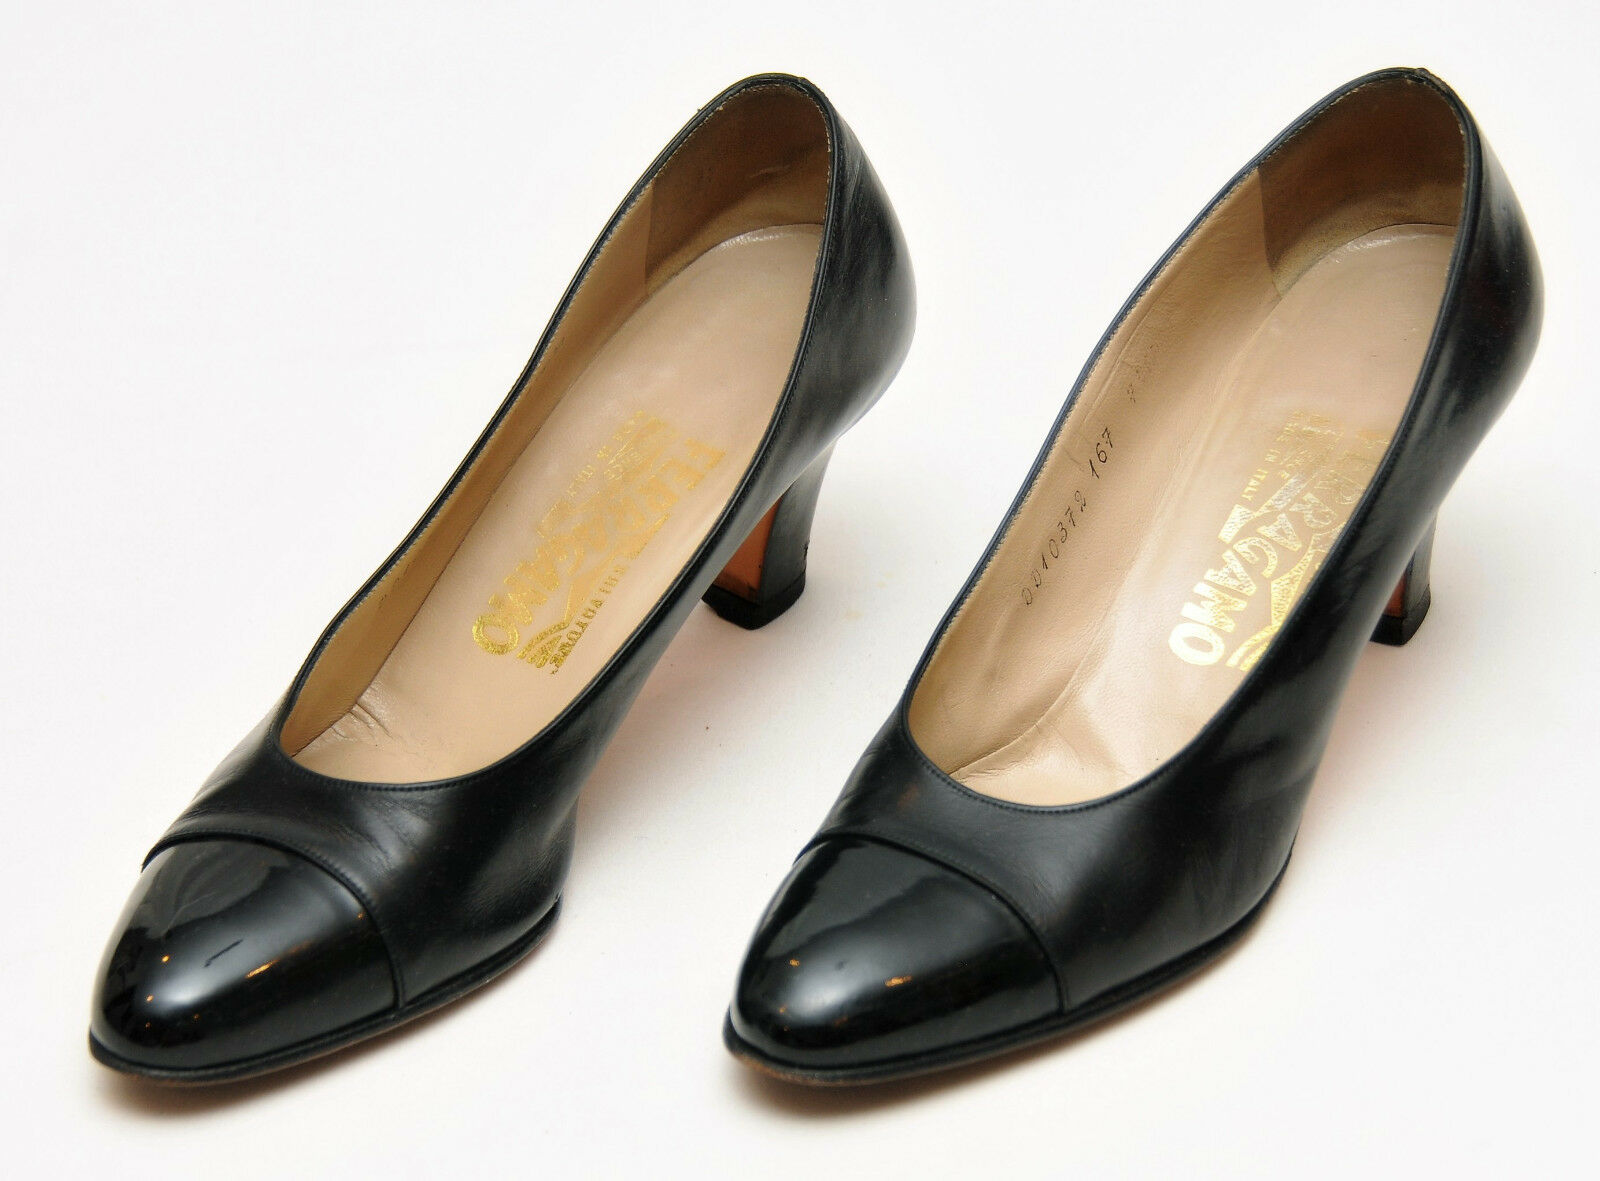 SALVATORE FERRAGAMOWOMEN'S BLACK LEATHER PATENT TOE HEELSSIZE 7.5 AAAA